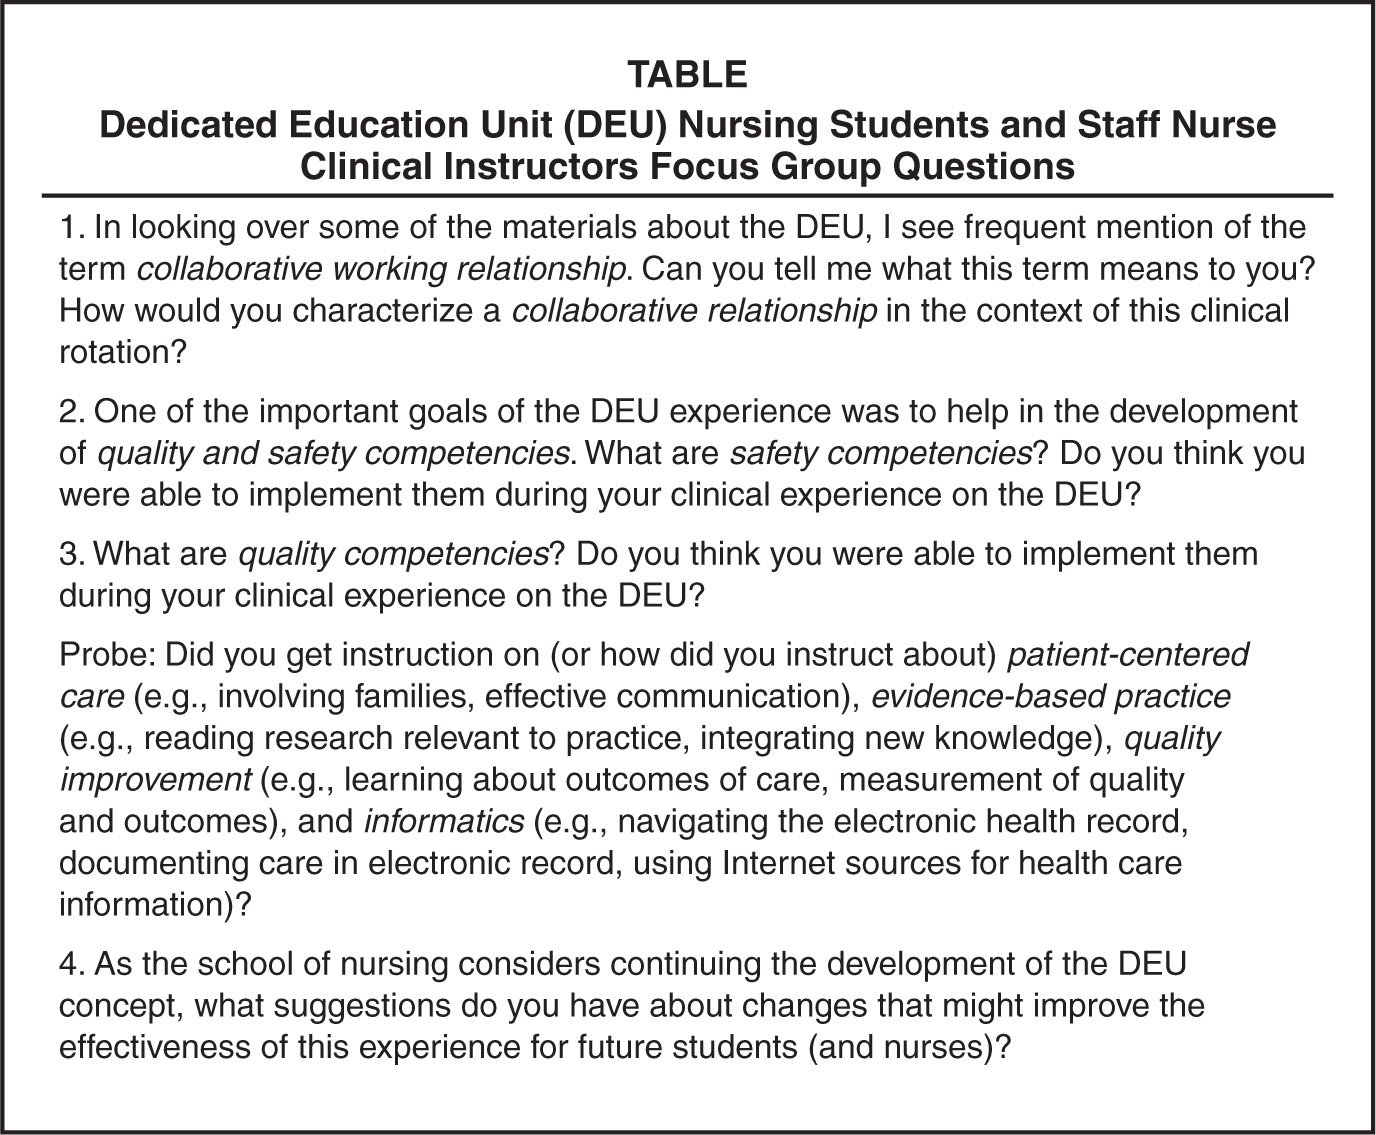 Dedicated Education Unit (DEU) Nursing Students and Staff Nurse Clinical Instructors Focus Group Questions